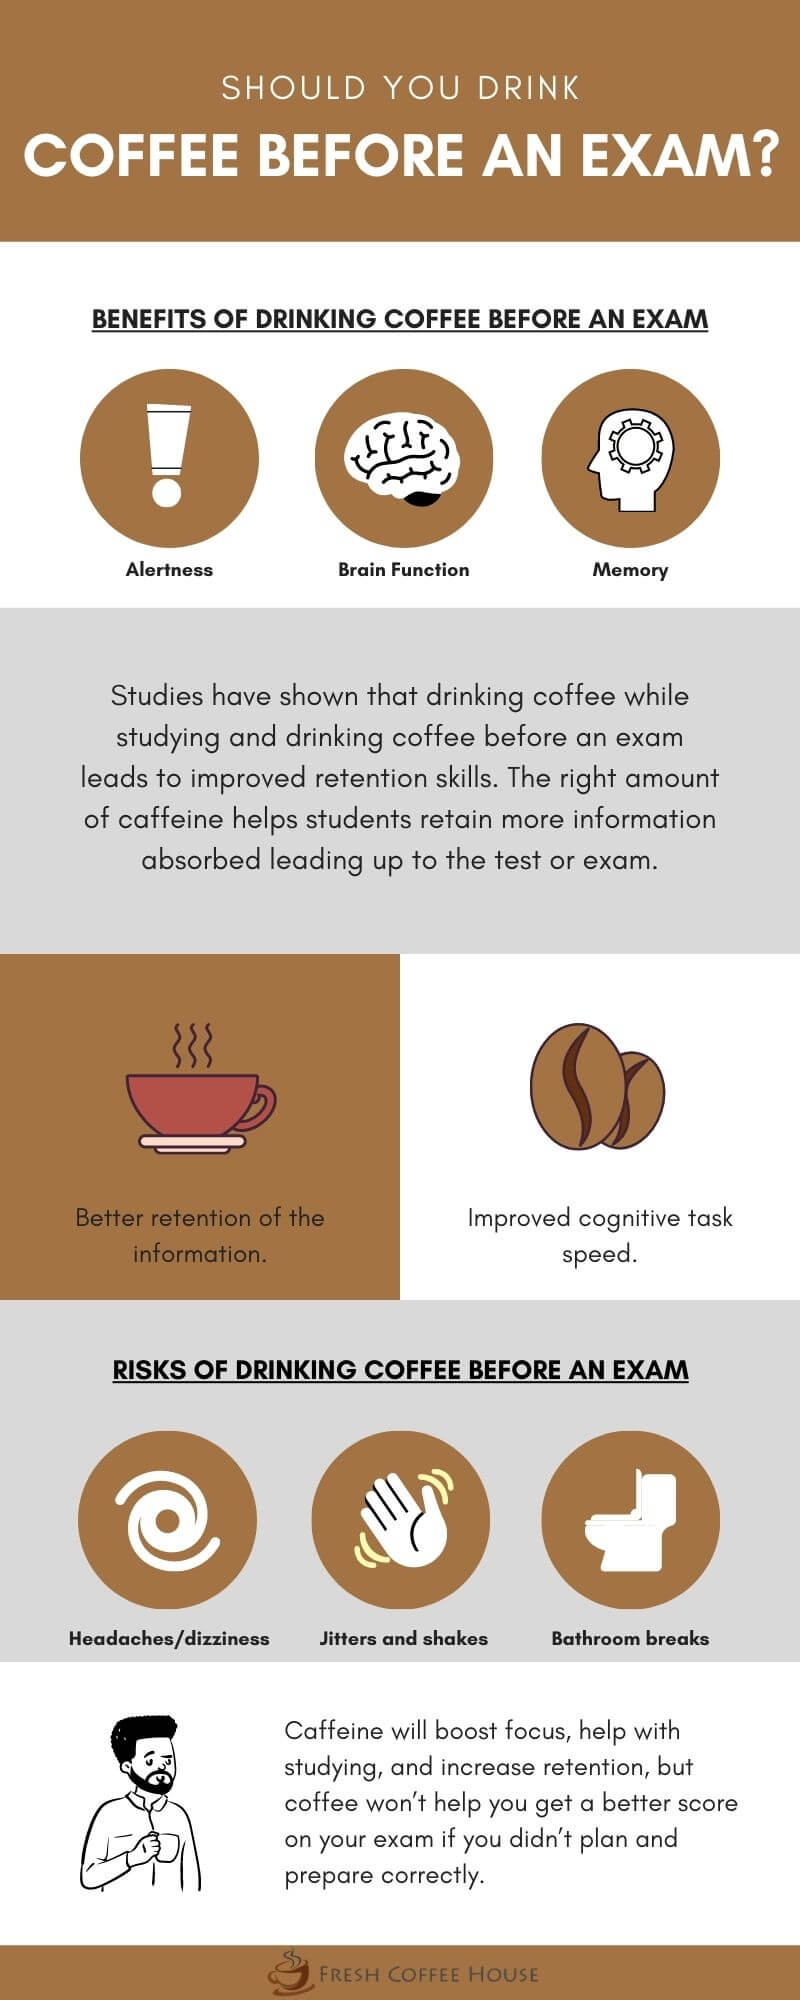 Coffee Before an Exam Infographic